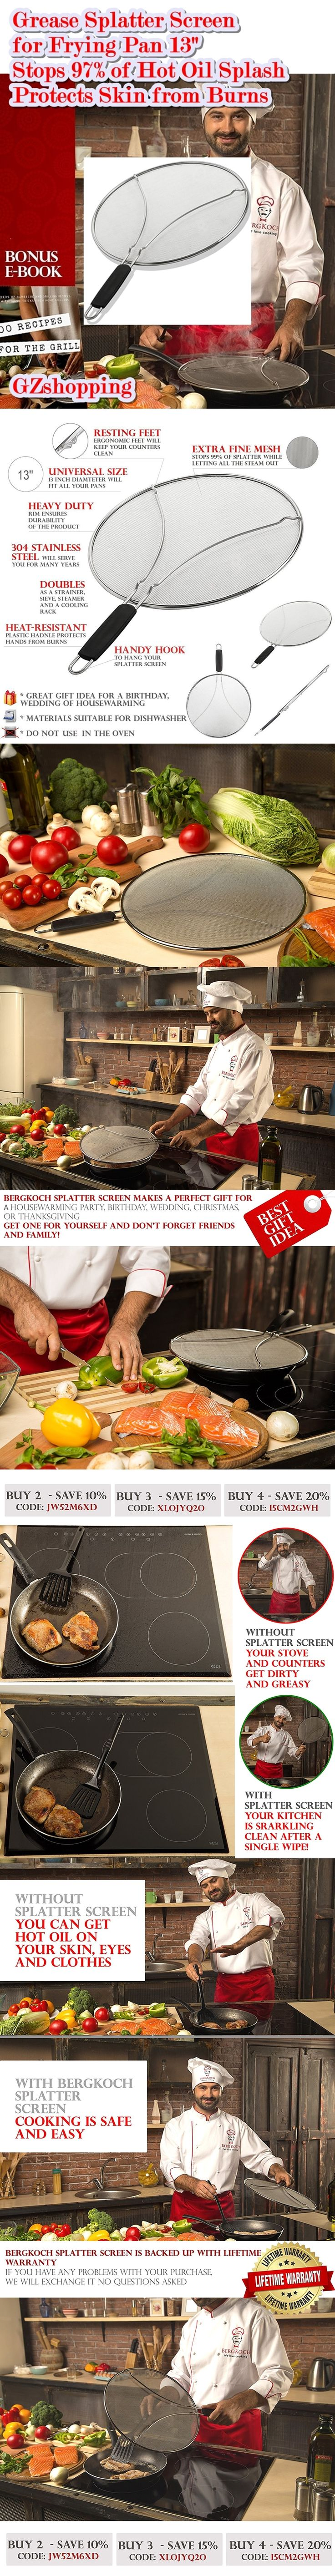 Universal size easy-to-clean multiuse grease guard: The diameter of this premium splatter screen for frying pans is 13 inches, so it will fit all your pots, skillets and pans. This multipurpose kitchen tool also doubles as a strainer, steamer, and a cooling rack and stores easily in narrow spaces - Easy to clean – Rustproof - Dishwasher safe